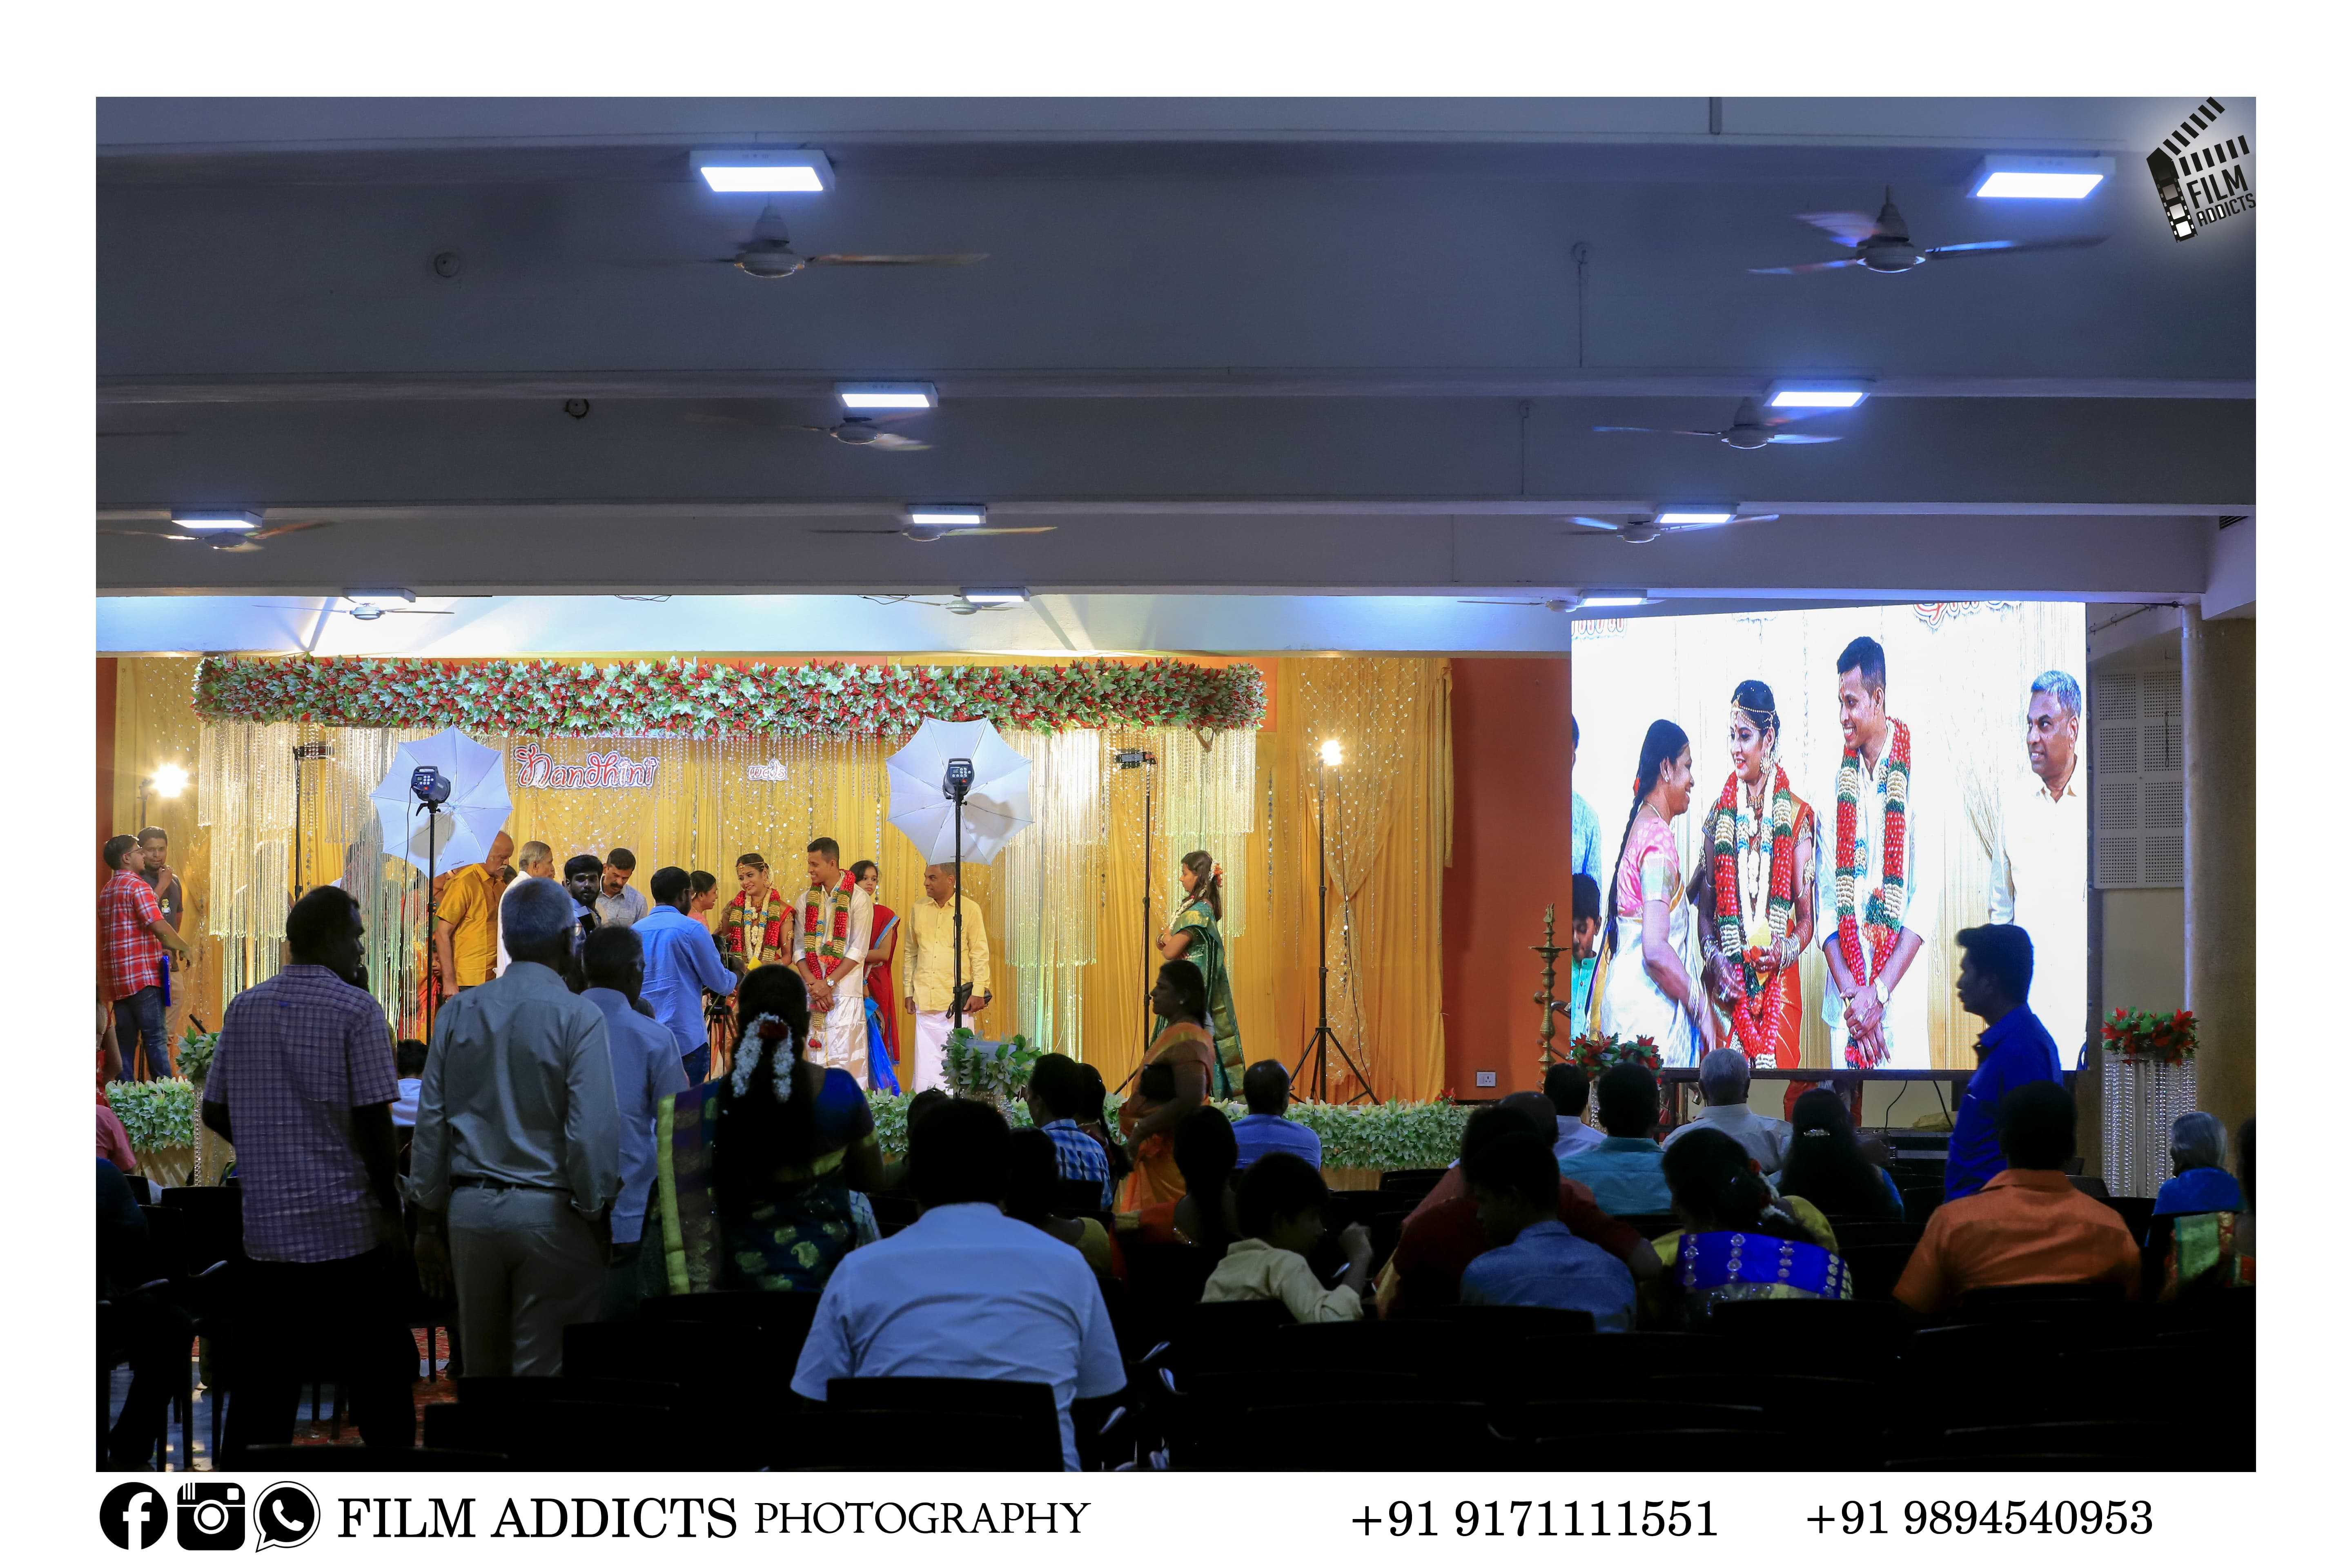 led wall on hire in madurai,led video wall in madurai,led display on hire in madurai,led screens on hire in madurai,led wall screen on hire in madurai,led dealers in madurai,led wall wholesalers in madurai,led wall distributors in madurai,led wall tv on hire in madurai,led wall rent in madurai,led video wall rent in madurai,led display rent in madurai,led screens rent in madurai,led wall screen rent in madurai,led wall tv rent in madurai,led wall rent wedding in madurai,led wall on hire wedding in madurai,led wall on hire events in madurai,led wall rent events in madurai,led wall rent school events in madurai,led wall college events in madurai,tv on hire in madurai,tv rent in madurai,best Wedding Photographers In Madurai,best Candid Photographers In Madurai,best Candid Photography In Madurai,best Wedding Photographers In Sivakasi,best Photographers In Madurai,best Wedding Videographers In Madurai,best Candid Video In Madurai,best Candid Wedding photographers in madurai,wedding photographers in madurai,best Wedding Photographers In tamilnadu,wedding-Photographer-Madurai, best-wedding-photography-in-madurai,candid-photographer-in-madurai, Candid Photographer Chennai, Wedding Photographer Chennai, Wedding Photographer Coimbatore, Wedding-Photographer-in-madurai,LED Wall on hire in madurai,led wall in madurai,LED Wall in viruthunagar,led wall in viruthunagar,LED Wall in sivakasi,led wall in sivakasi,LED Wall in rajapalayam,led wall in rajapalayam,LED Wall in kovilpatti,led wall in kovilpatti,LED Wall in ramanathapuram,led wall in ramanathapuram,LED Wall in karaikudi,led wall in karaikudi,LED Wall in tirunelveli,led wall in tirunelveli,LED Wall in aruppukottai,led wall in aruppukottai,LED Wall in theni,led wall in theni,LED Wall in sivagangai,led wall in sivagangai,LED Wall in urilampatti,led wall in urilampatti,LED Wall in melur,led wall in melur,LED Wall in bodi,led wall in bodi,LED Wall in vadipatti,led wall in vadipatti,LED Wall in devakottai,led wall in devakottai,LED Wall in natham,led wall in natham,LED Wall in dindigul,led wall in dindigul,LED Wall in podukkottai,led wall in podukkottai,LED Wall in palani,led wall in palani,LED Wall in trichy,led wall in trichy,LED Wall in trichirapalli,led wall in trichirapalli,LED Wall in karur,led wall in karur,LED Wall in kombam,led wall in kombam LED Wall on hire in madurai,led wall on hire in madurai,LED Wall on hire in viruthunagar,led wall on hire in viruthunagar,LED Wall on hire in sivakasi,led wall on hire in sivakasi,LED Wall on hire in rajapalayam,led wall on hire in rajapalayam,LED Wall on hire in kovilpatti,led wall on hire in kovilpatti,LED Wall on hire in ramanathapuram,led wall on hire in ramanathapuram,LED Wall on hire in karaikudi,led wall on hire in karaikudi,LED Wall on hire in tirunelveli,led wall on hire in tirunelveli,LED Wall on hire in aruppukottai,led wall on hire in aruppukottai,LED Wall on hire in theni,led wall on hire in theni,LED Wall on hire in sivagangai,led wall on hire in sivagangai,LED Wall on hire in urilampatti,led wall on hire in urilampatti,LED Wall on hire in melur,led wall on hire in melur,LED Wall on hire in bodi,led wall on hire in bodi,LED Wall on hire in vadipatti,led wall on hire in vadipatti,LED Wall on hire in devakottai,led wall on hire in devakottai,LED Wall on hire in natham,led wall on hire in natham,LED Wall on hire in dfordigul,led wall on hire in dfordigul,LED Wall on hire in podukkottai,led wall on hire in podukkottai,LED Wall on hire in palani,led wall on hire in palani,LED Wall on hire in trichy,led wall on hire in trichy,LED Wall on hire in trichirapalli,led wall on hire in trichirapalli,LED Wall on hire in karur,led wall on hire in karur,LED Wall on hire in kombam,led wall on hire in kombam LED Wall rental  for madurai,led wall rental in madurai,LED Wall rental for viruthunagar,led wall rental for viruthunagar,LED Wall rental for sivakasi,led wall rental for sivakasi,LED Wall rental for rajapalayam,led wall rental for rajapalayam,LED Wall rental for kovilpatti,led wall rental for kovilpatti,LED Wall rental for ramanathapuram,led wall rental for ramanathapuram,LED Wall rental for karaikudi,led wall rental for karaikudi,LED Wall rental for tirunelveli,led wall rental for tirunelveli,LED Wall rental for aruppukottai,led wall rental for aruppukottai,LED Wall rental for theni,led wall rental for theni,LED Wall rental for sivagangai,led wall rental for sivagangai,LED Wall rental for urilampatti,led wall rental for urilampatti,LED Wall rental for melur,led wall rental for melur,LED Wall rental for bodi,led wall rental for bodi,LED Wall rental for vadipatti,led wall rental for vadipatti,LED Wall rental for devakottai,led wall rental for devakottai,LED Wall rental for natham,led wall rental for natham,LED Wall rental for dfordigul,led wall rental for dfordigul,LED Wall rental for podukkottai,led wall rental for podukkottai,LED Wall rental for palani,led wall rental for palani,LED Wall rental for trichy,led wall rental for trichy,LED Wall rental for trichirapalli,led wall rental for trichirapalli,LED Wall rental for karur,led wall rental for karur,LED Wall rental for kombam,led wall rental for kombam